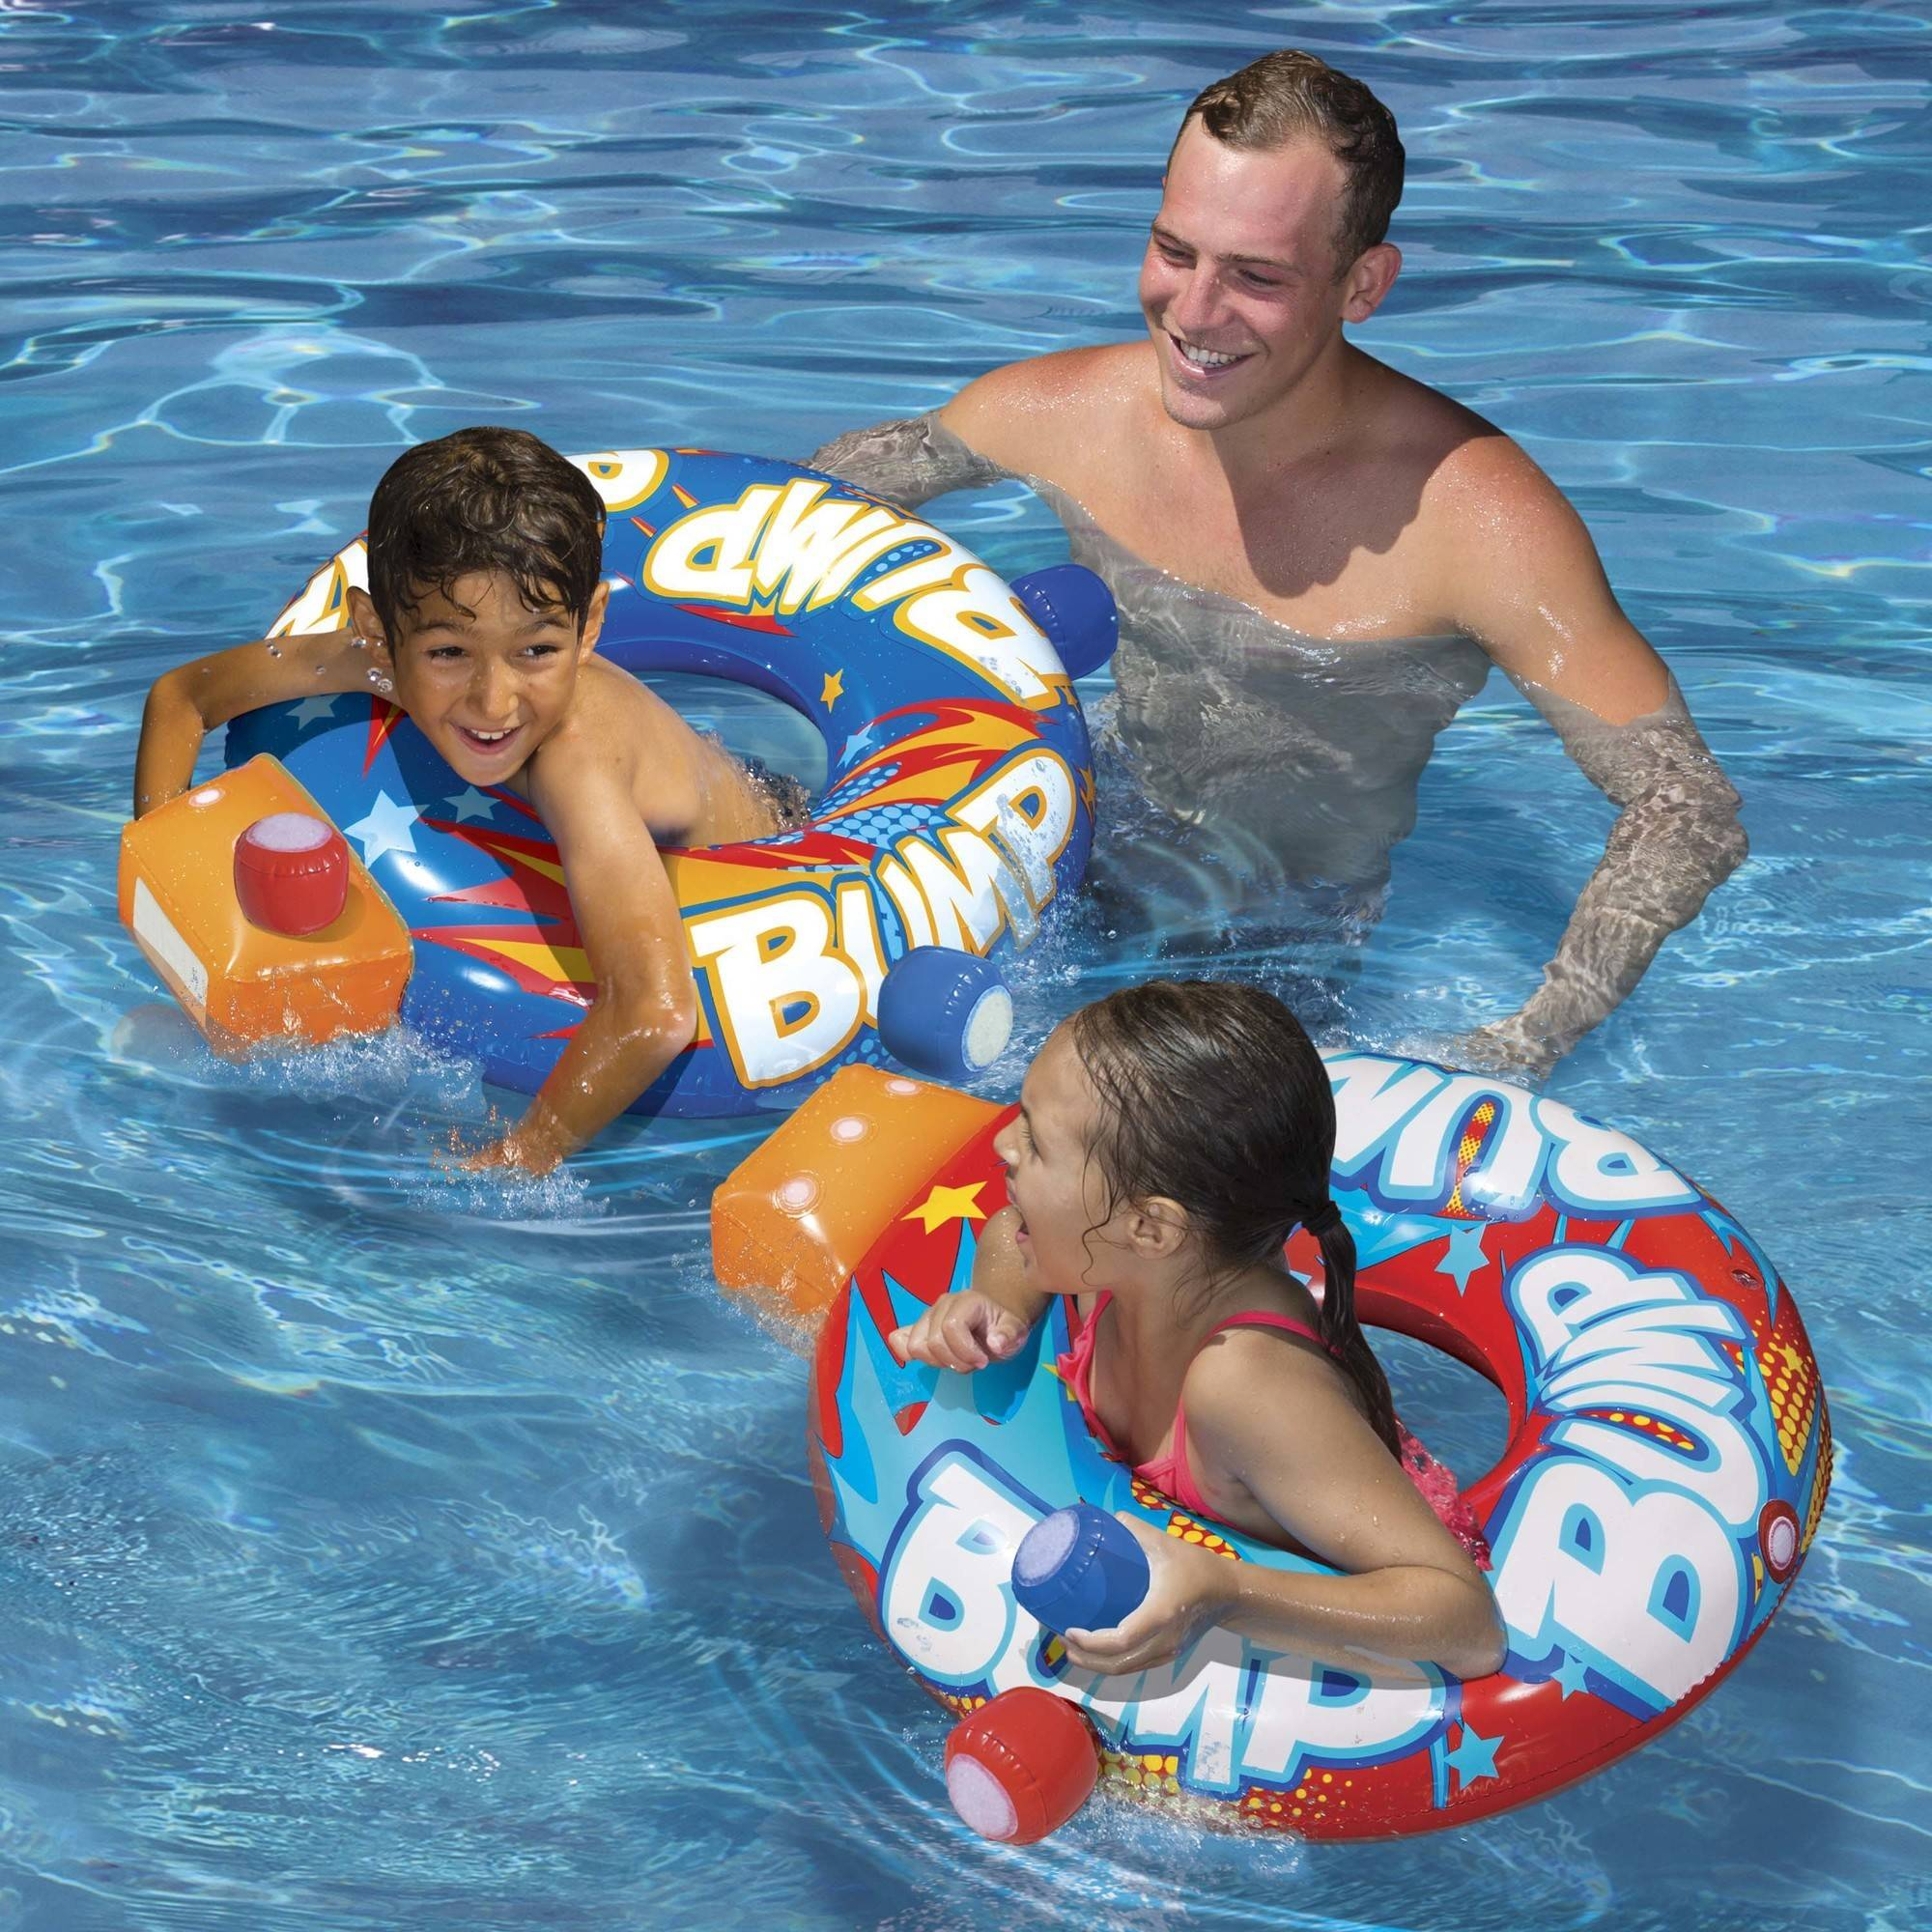 Banzai Bumper Tag Pool Game Inflatable Pool Lounge Toy Pool Toys